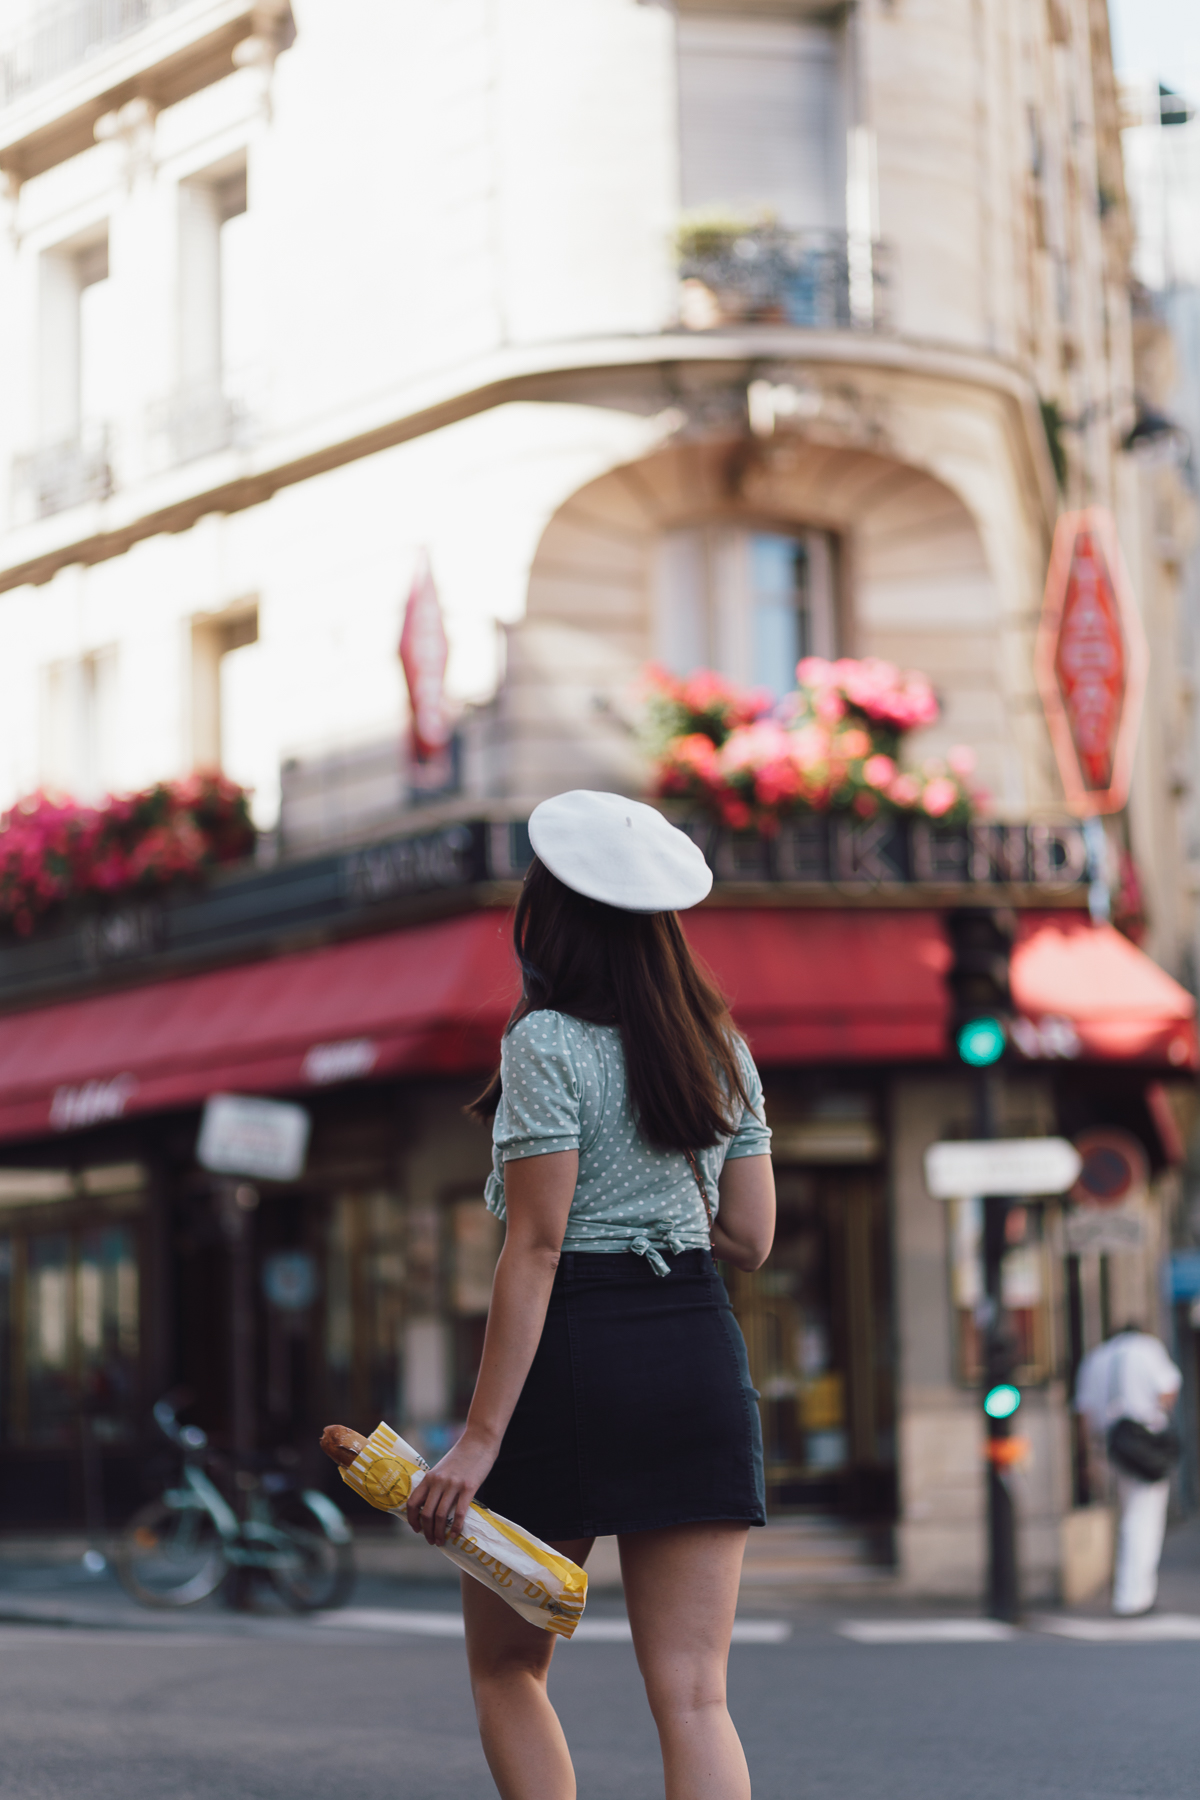 beret - streetstyle paris - parisian ootd - denim mini - classic supergas - boulangerie - benedetta bruzziches carmen bag - blouse with dots - pünktchenbluse